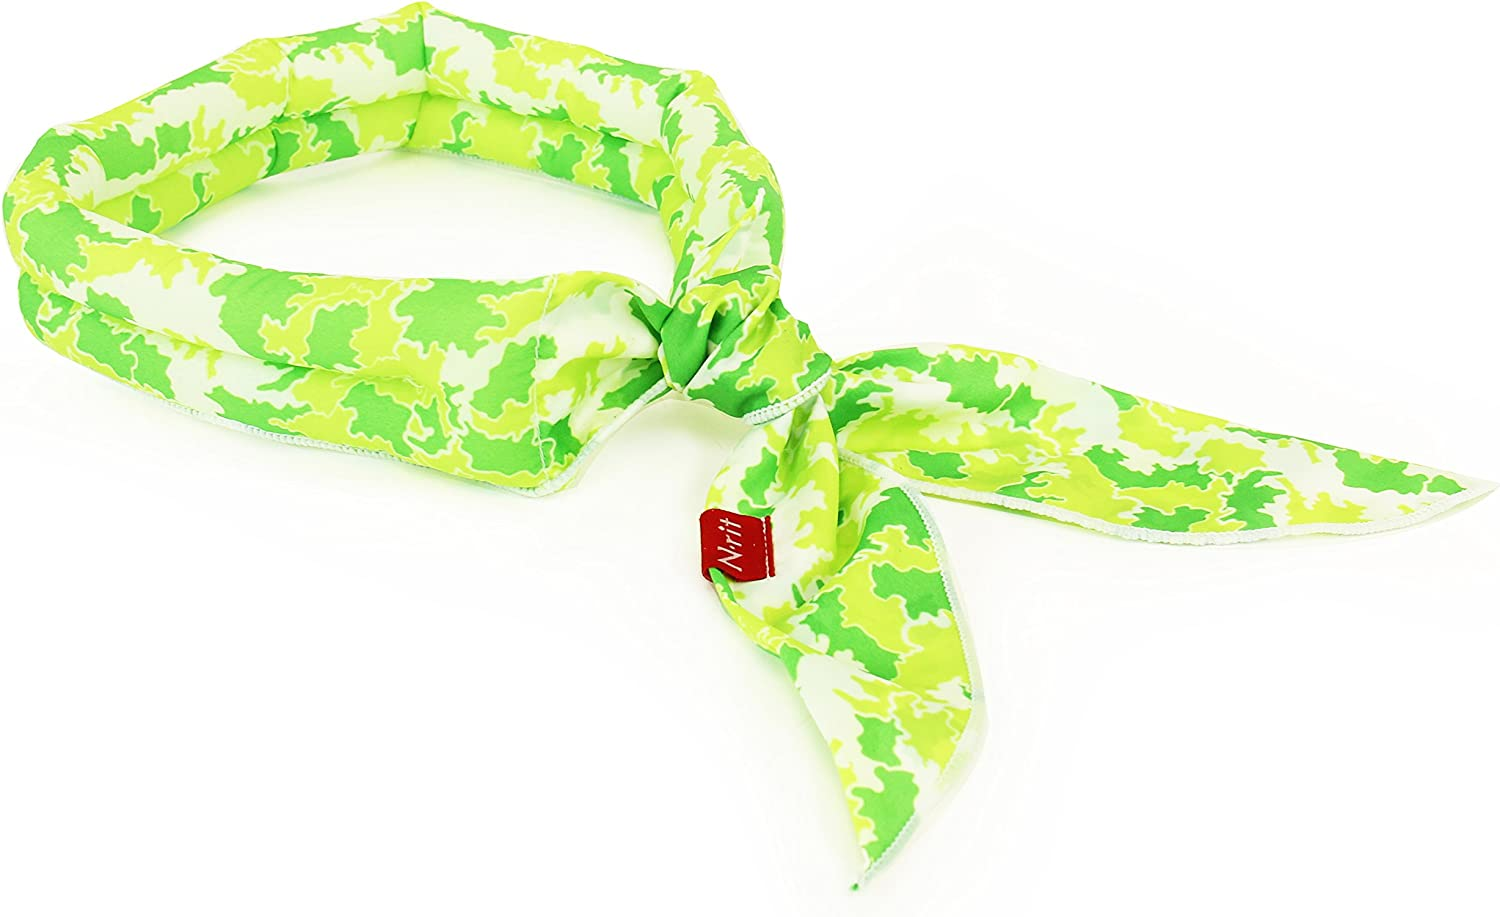 N-rit Cooling Scarf. Wrap a Soaked Tie Around Neck or Head to Instantly Chill Out. Crystal Polymer Technology Keeps Cool & Reusable. Great for Summer, Outdoor Activities & Sports. [Green Camo]